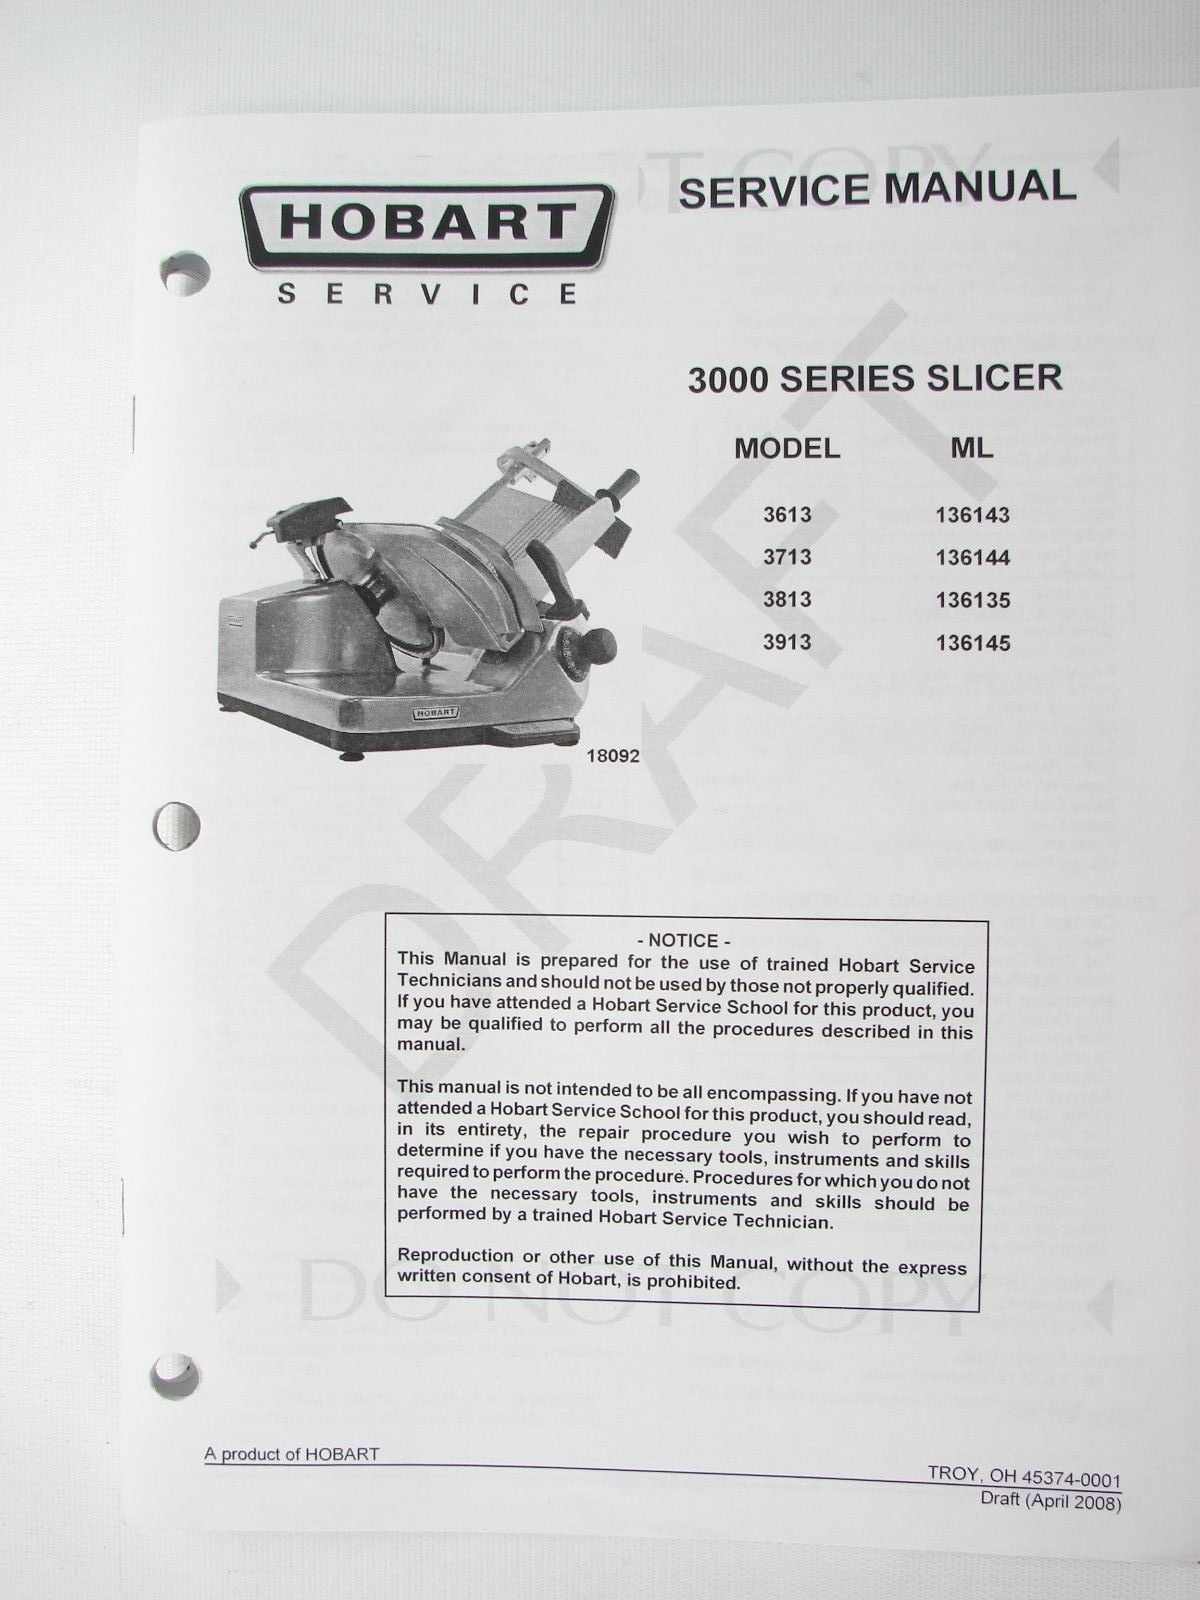 Hobart 3000 Series Slicers Instructions, and 50 similar items